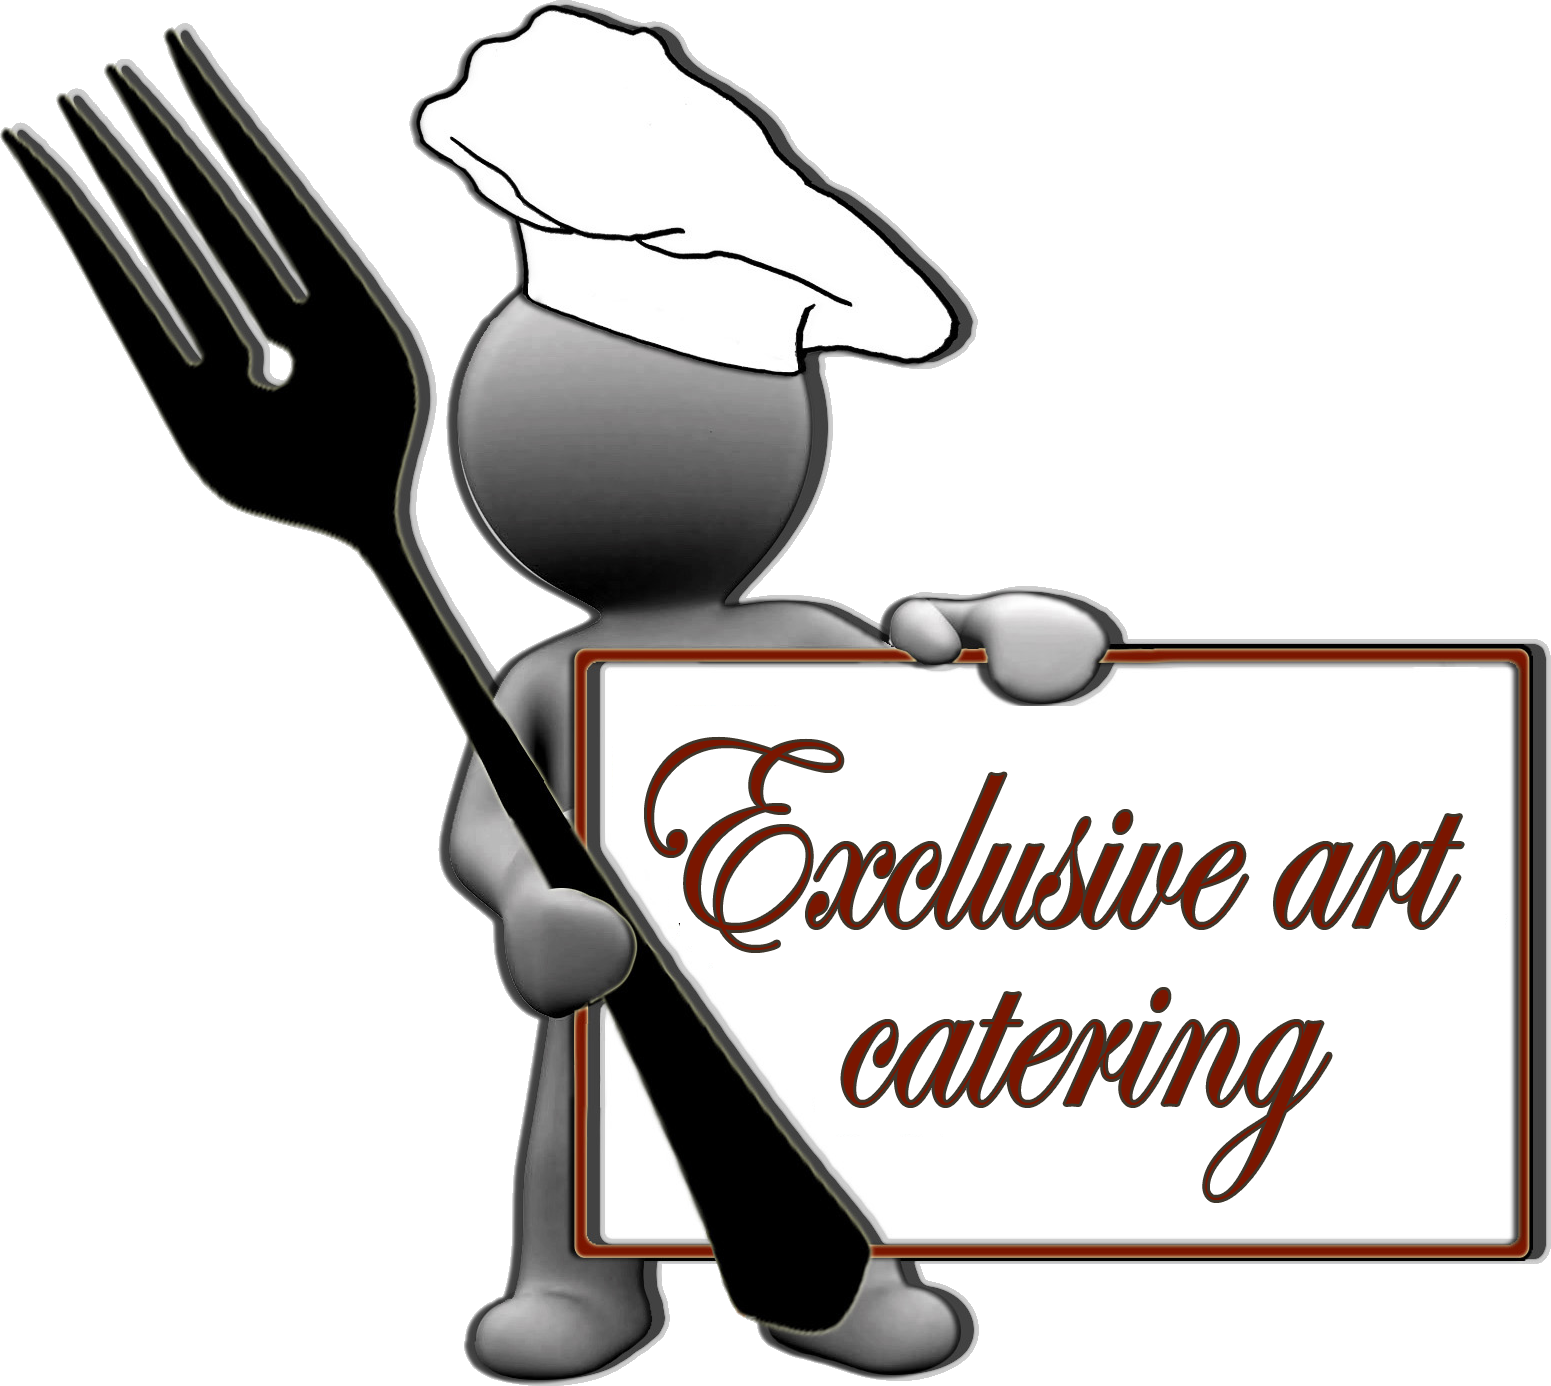 Exclusive art catering